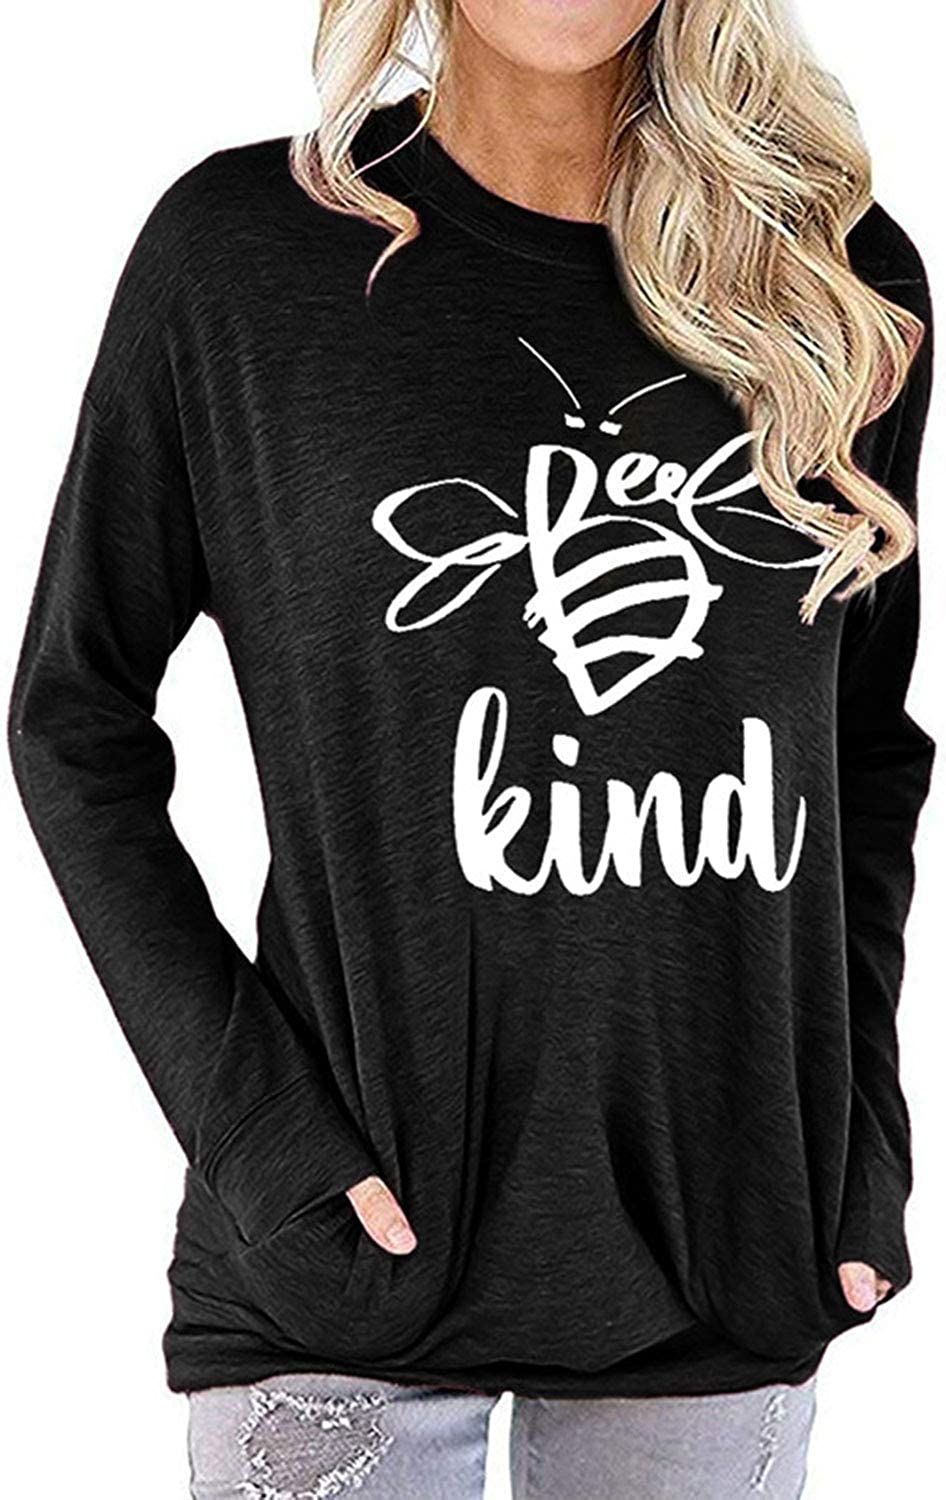 Be Kind Sweatshirt Women Bee Graphic Tees Shirt T Shirts Long Sleeve Casual Tops Blouse Pullover